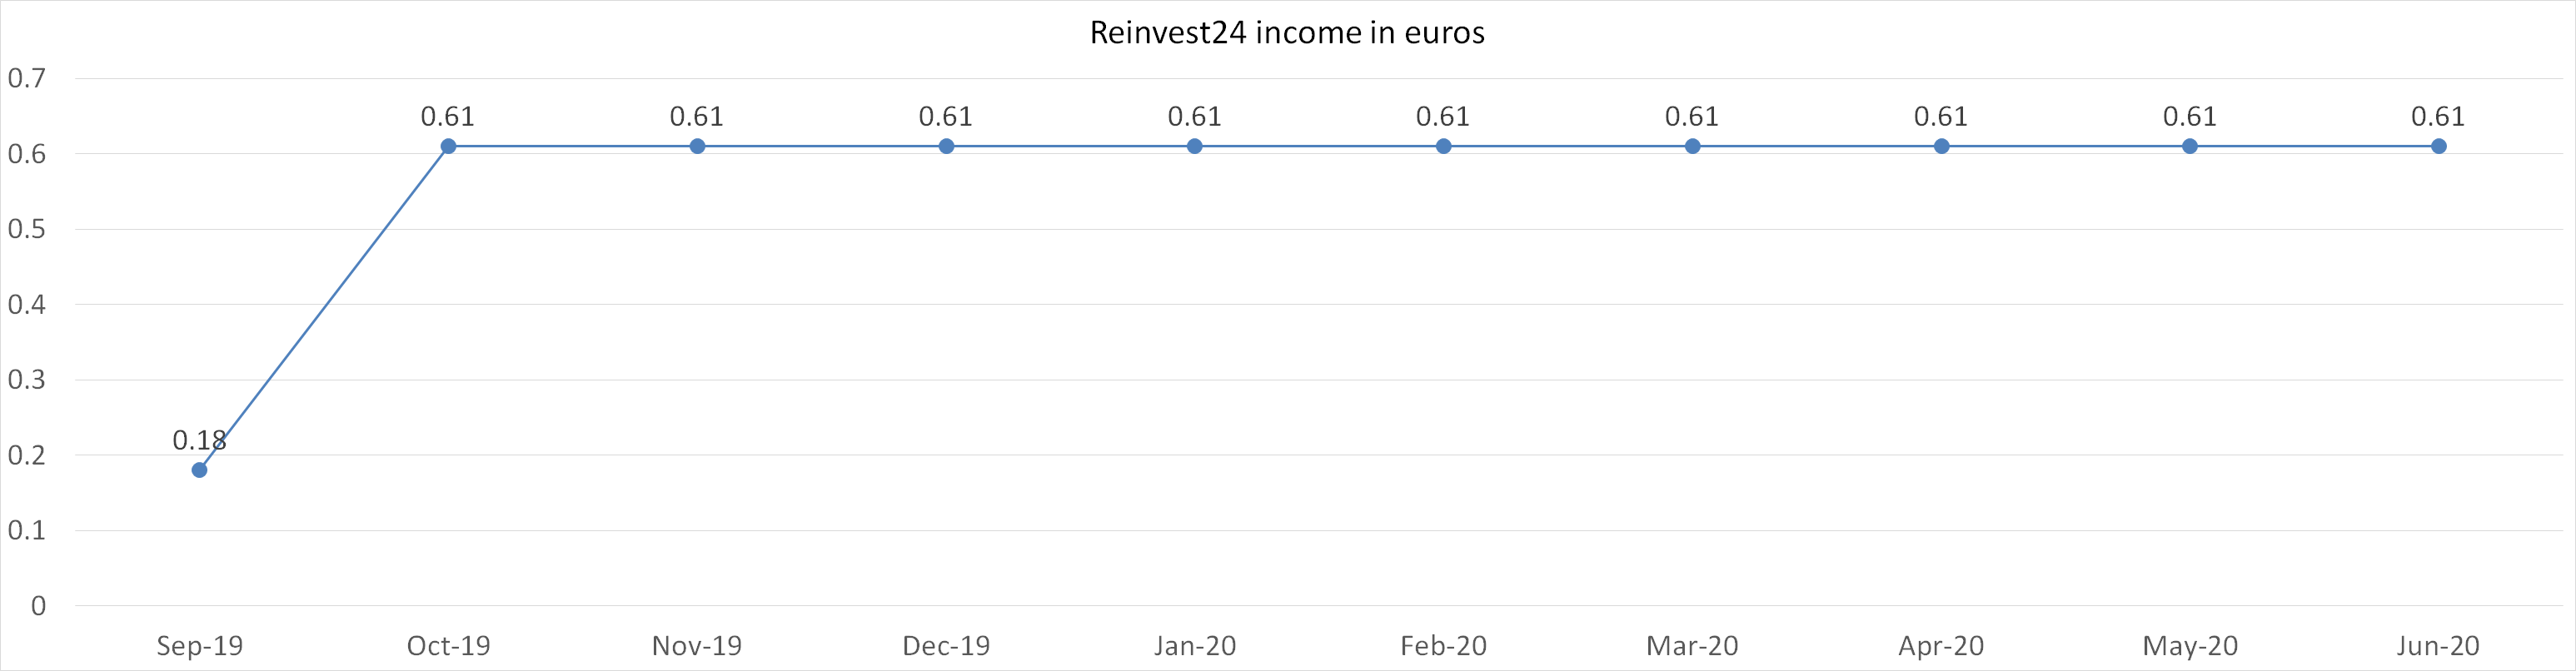 Reinvest24 income in euros june 2020